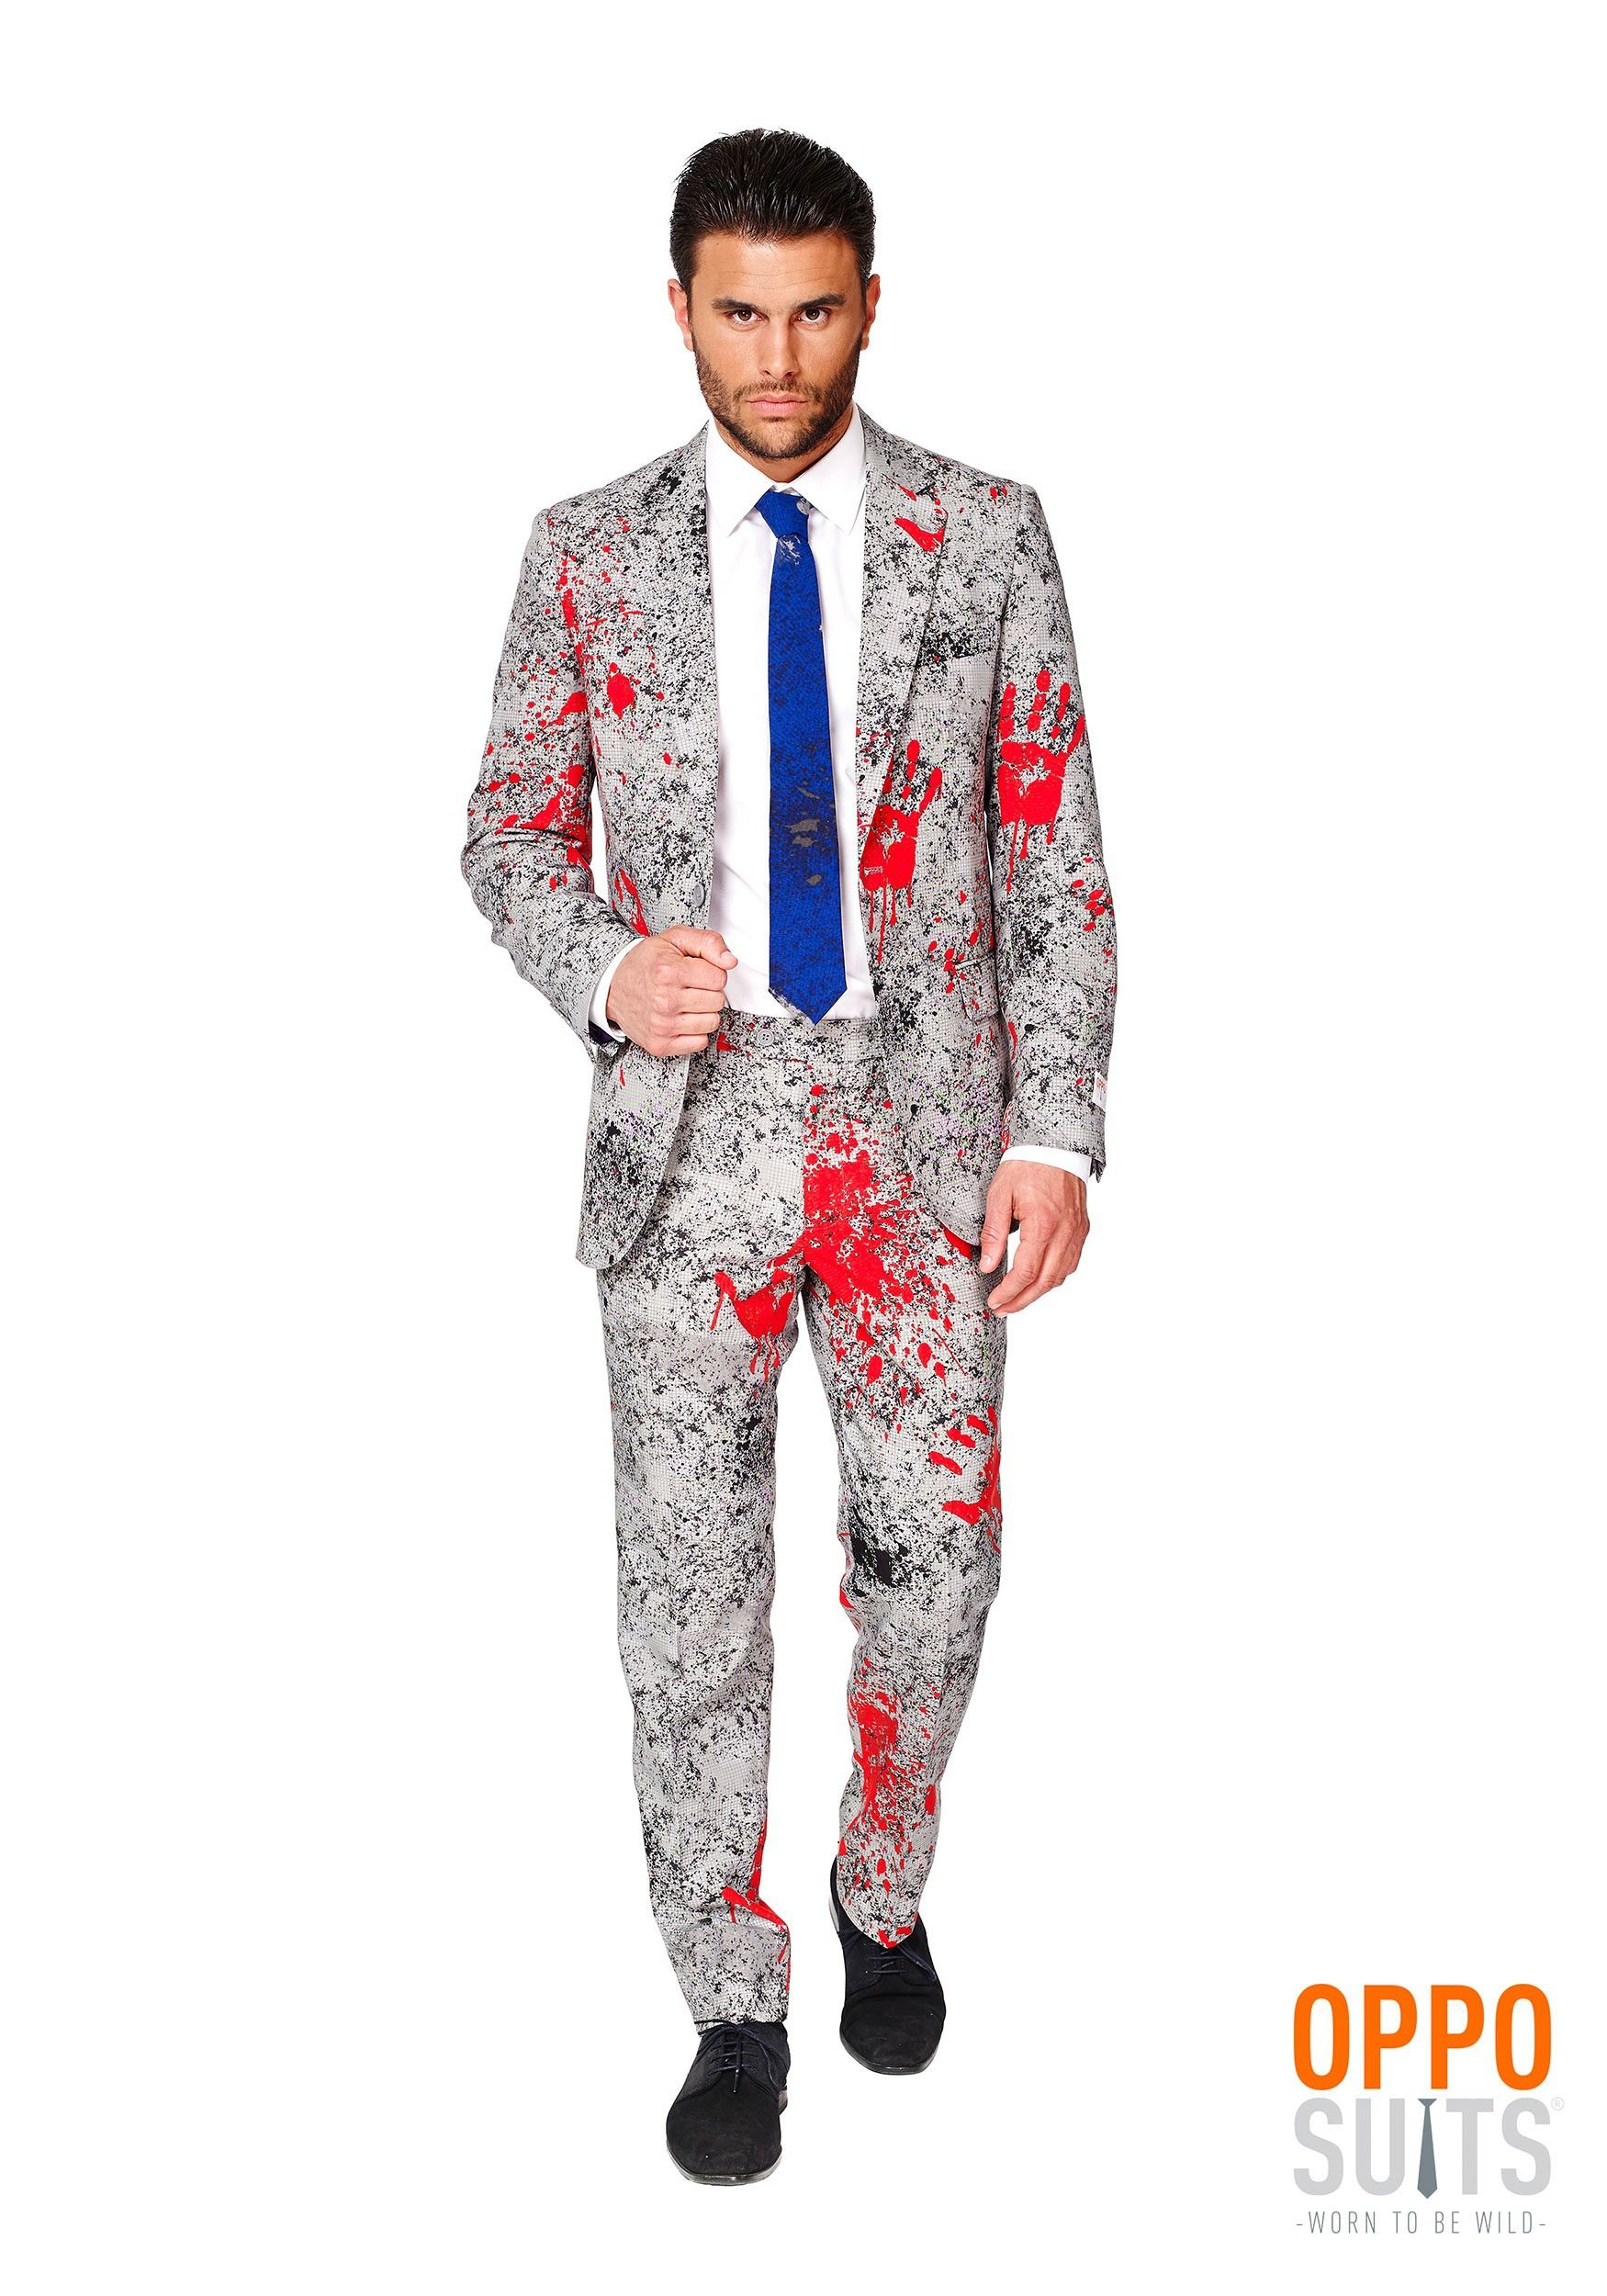 d8ea713be3b This Men s OppoSuits Zombiac Suit is perfect for your office Halloween  party.